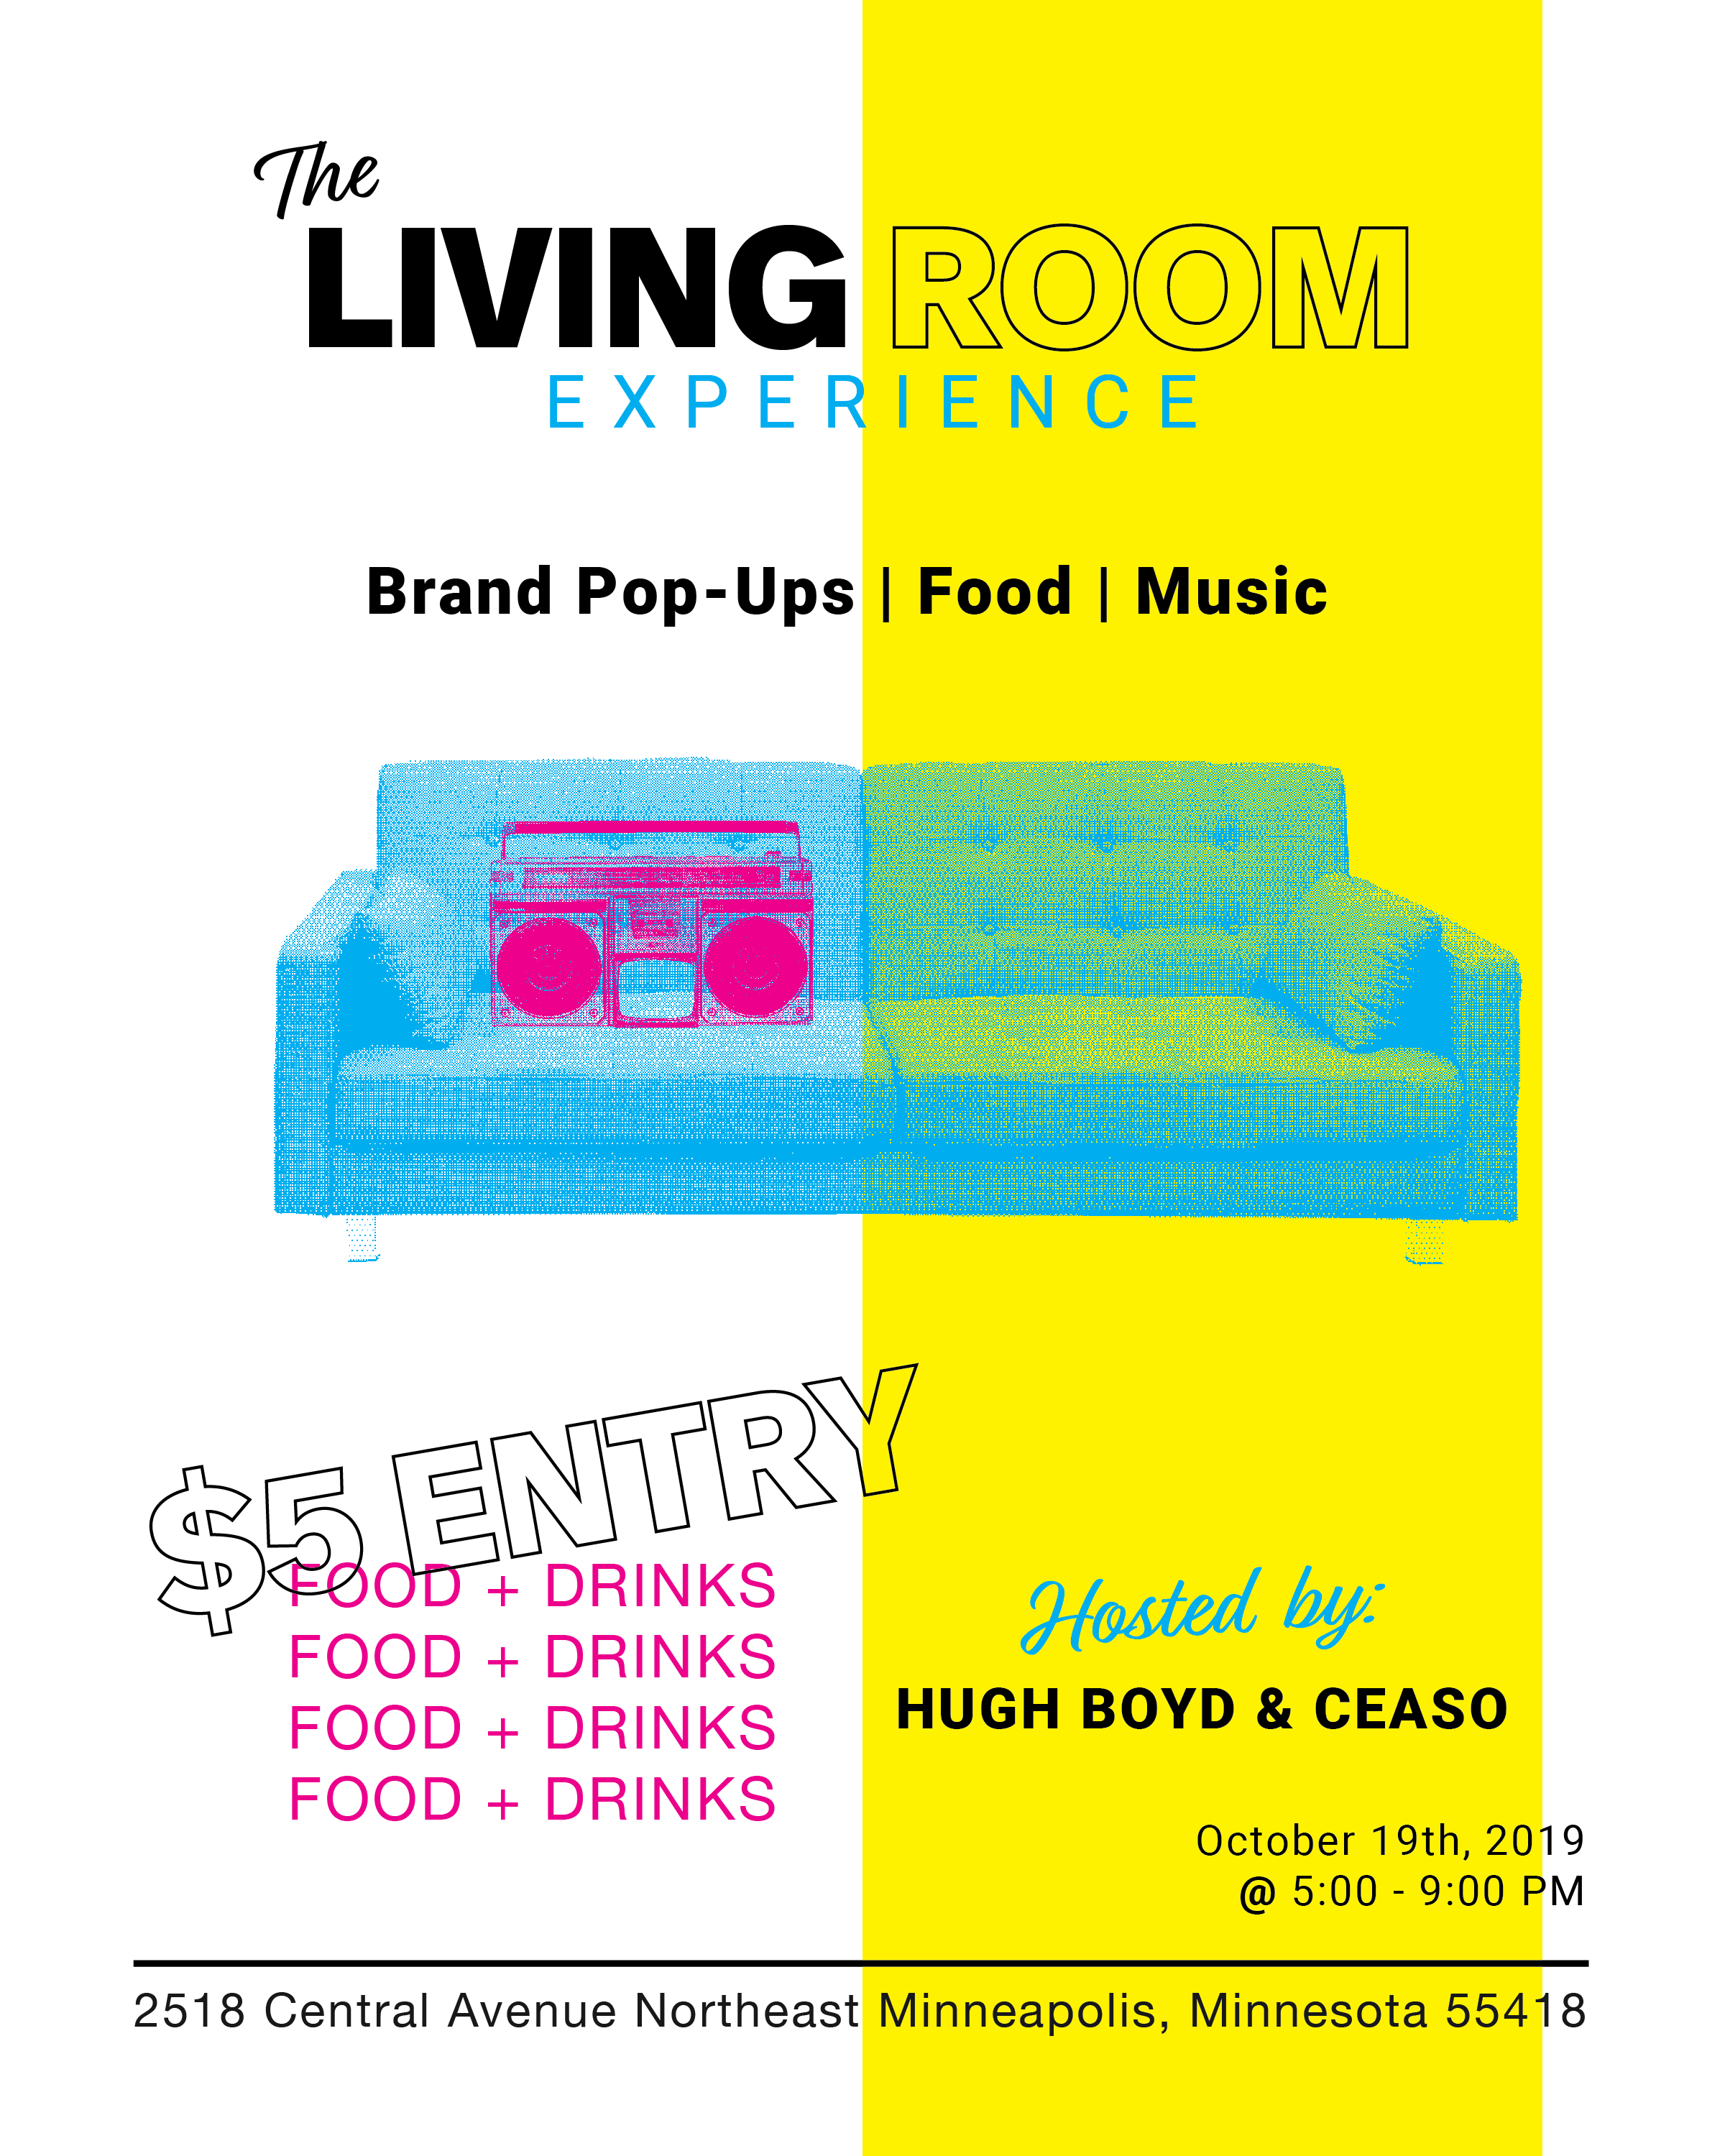 Thelivingroom_expierence_flyer-01.jpg